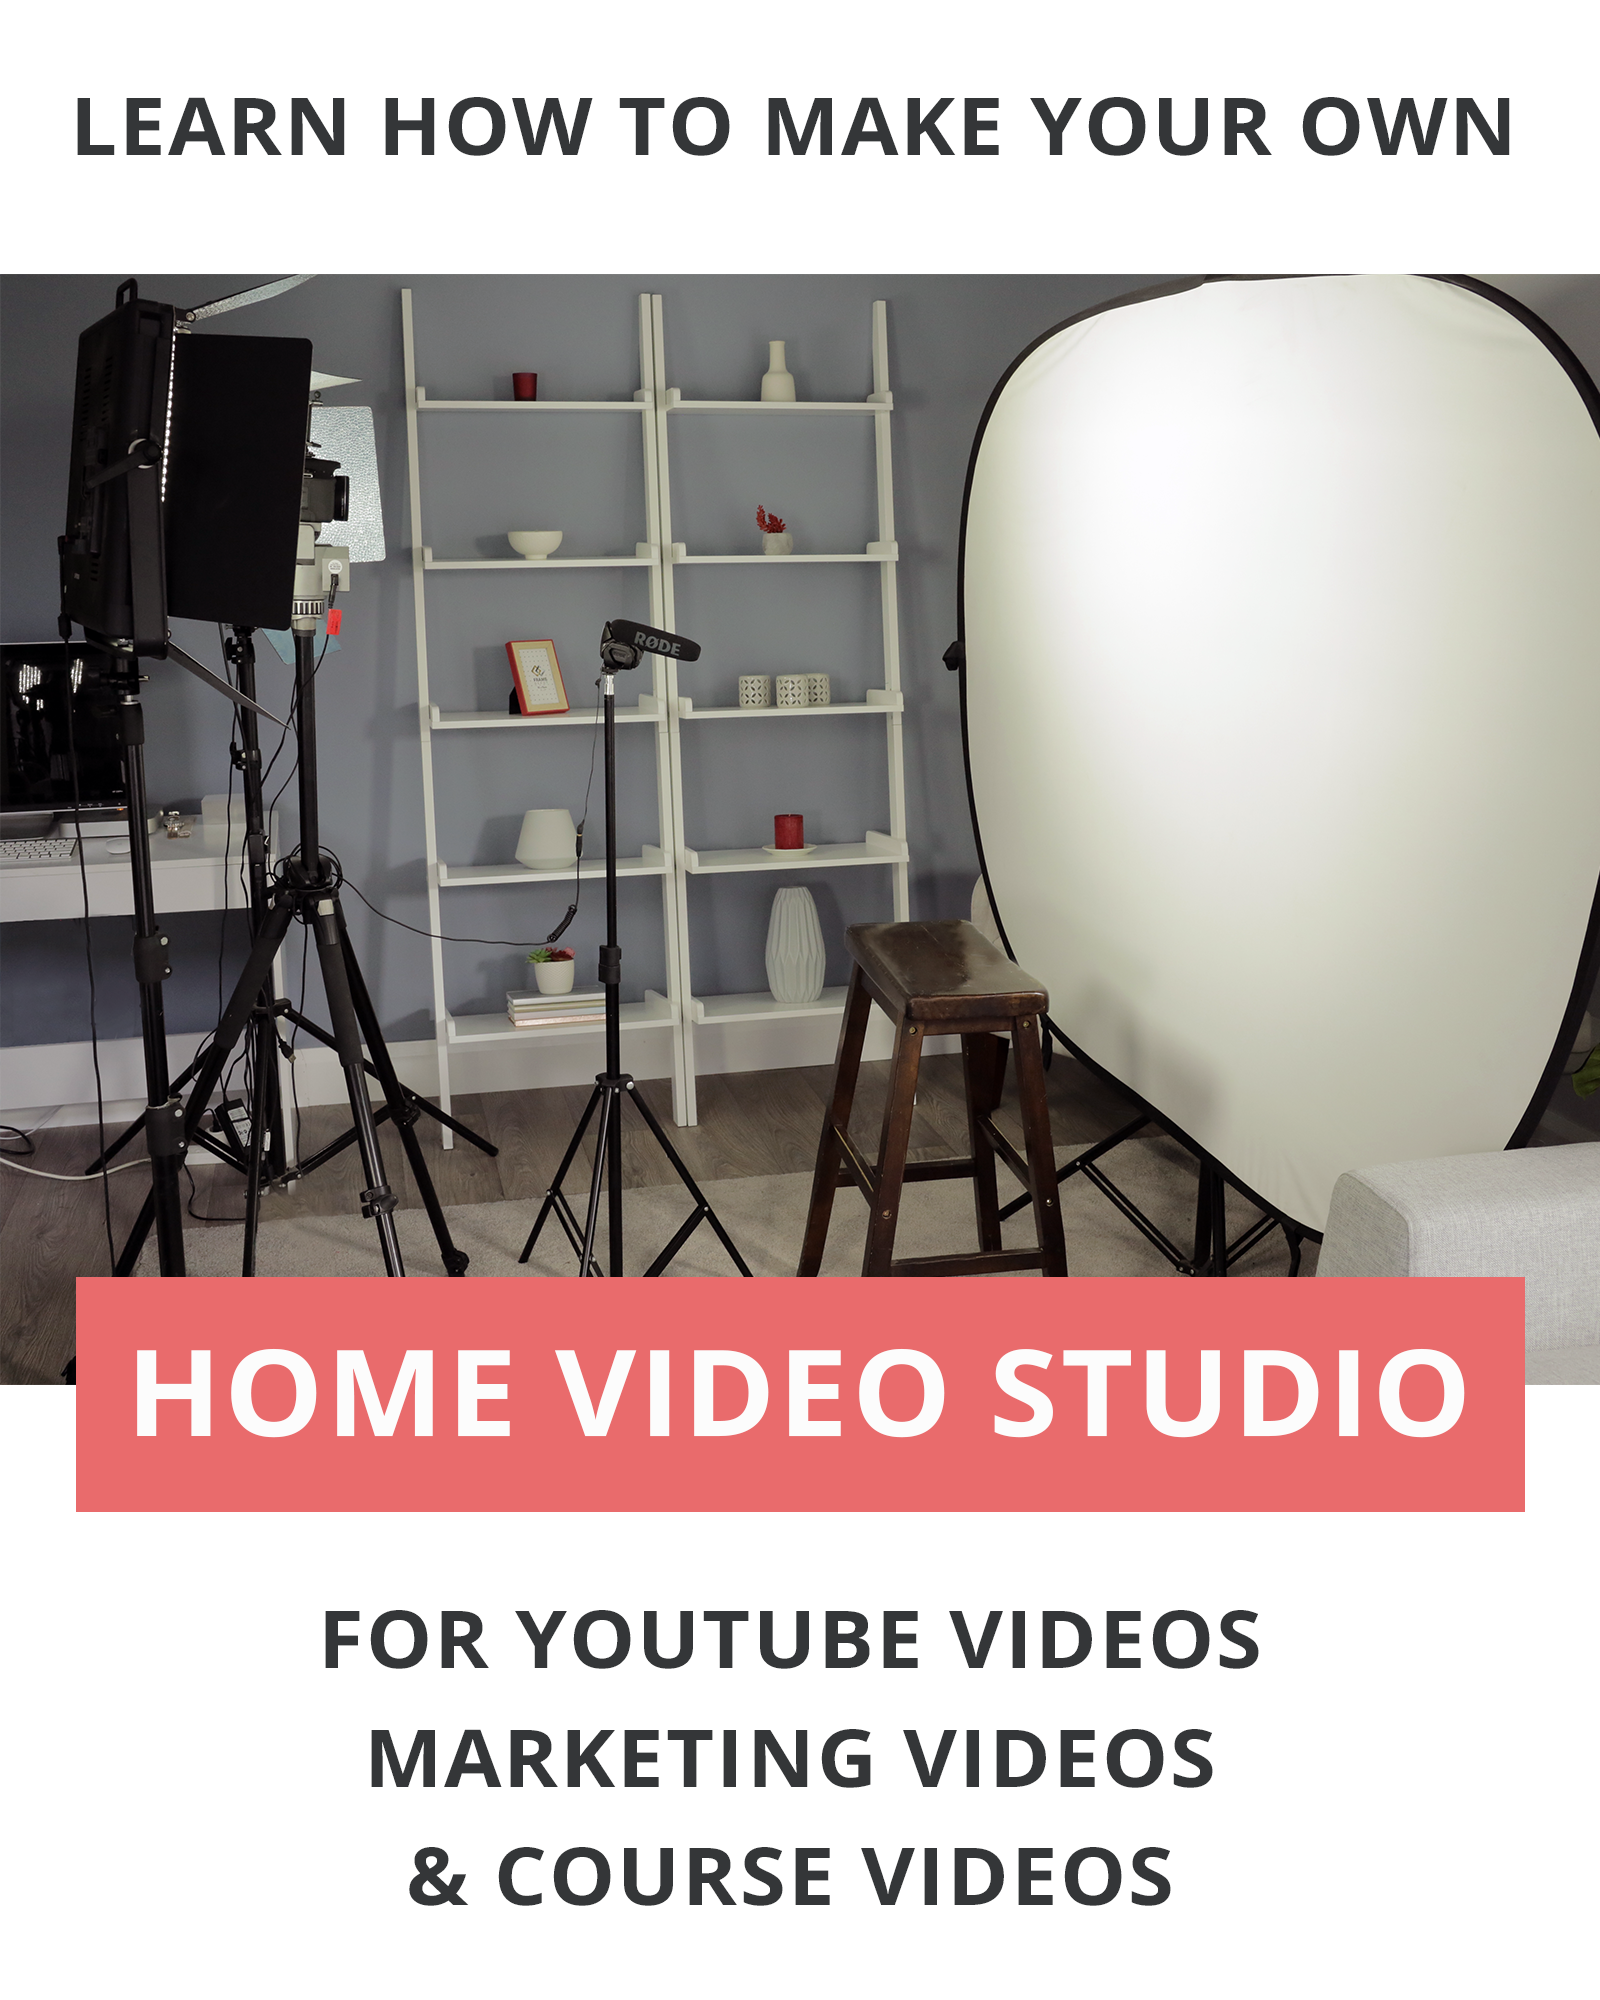 Let Me Show You My Diy Youtube Studio Setup At Home In This Video Production Studio Tour You Ll See What You Need To Set Home Studio Diy Youtube Studio Setup